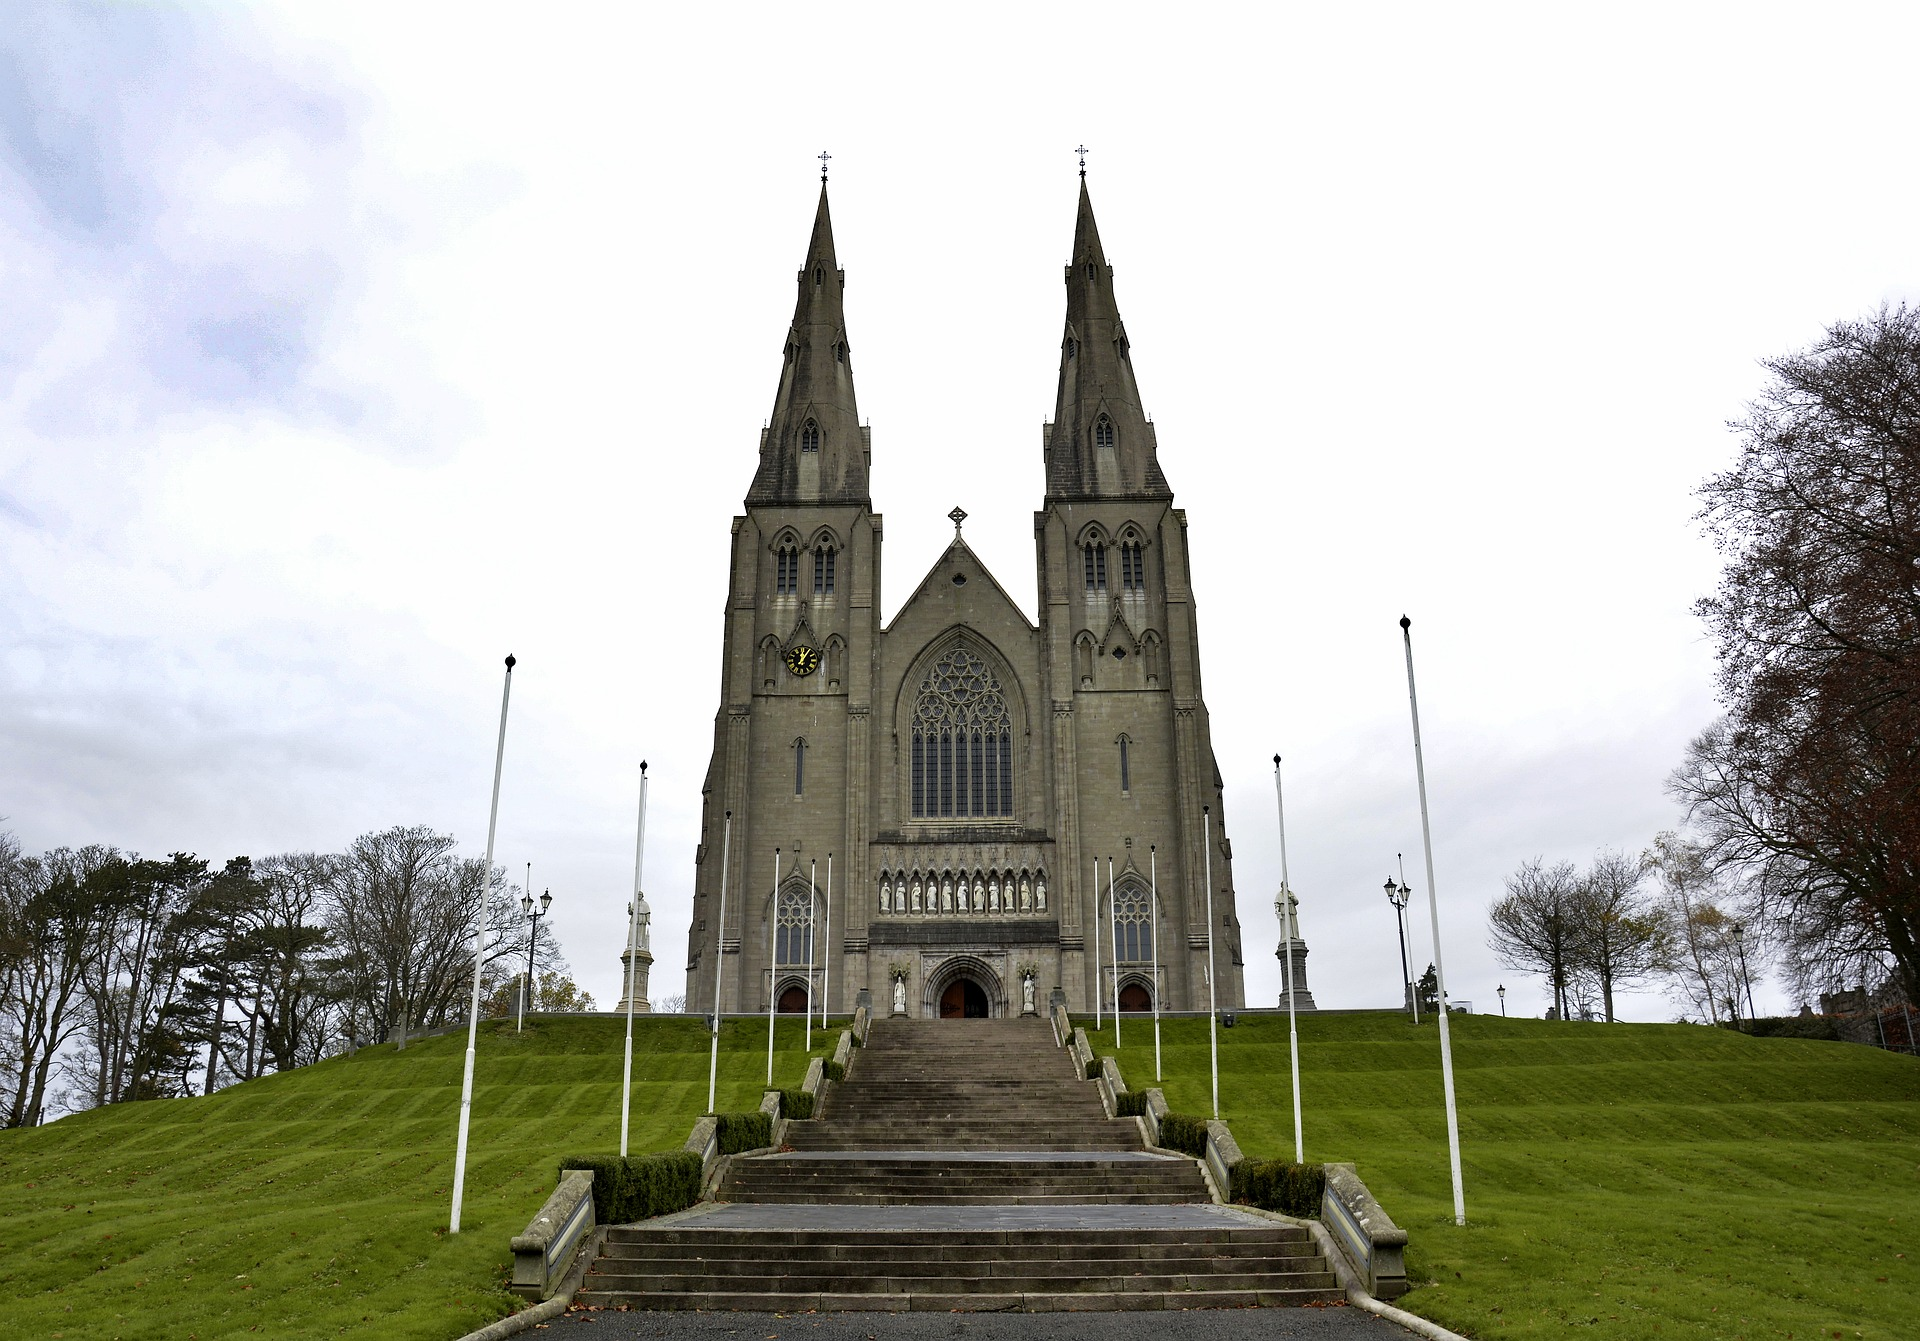 Saint Patrick's Cathedral in Armagh. Photo copyright courtesy of cathal100 https://pixabay.com/users/cathal100-6495647/